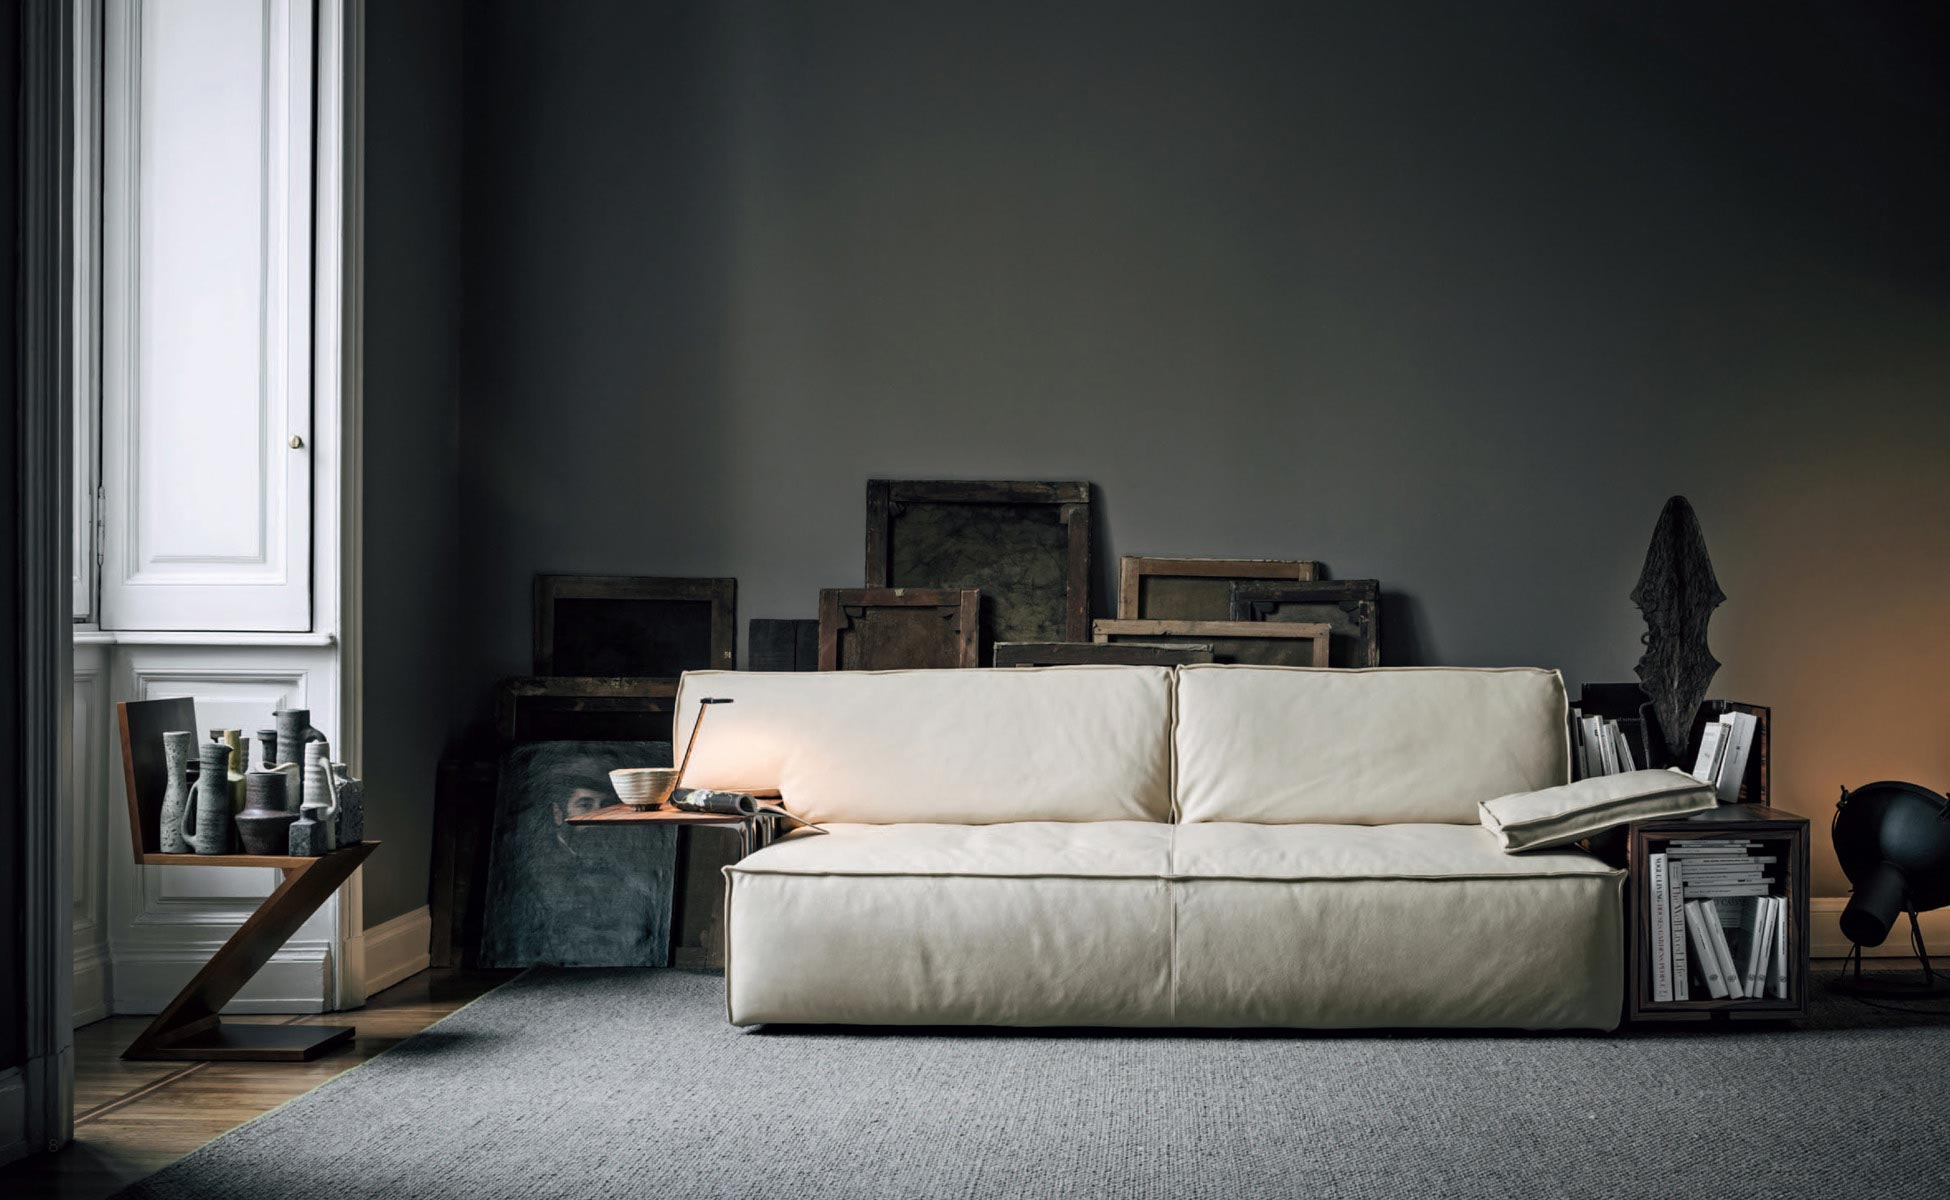 cassina 244 myworld sofa in berlin bei steidten+